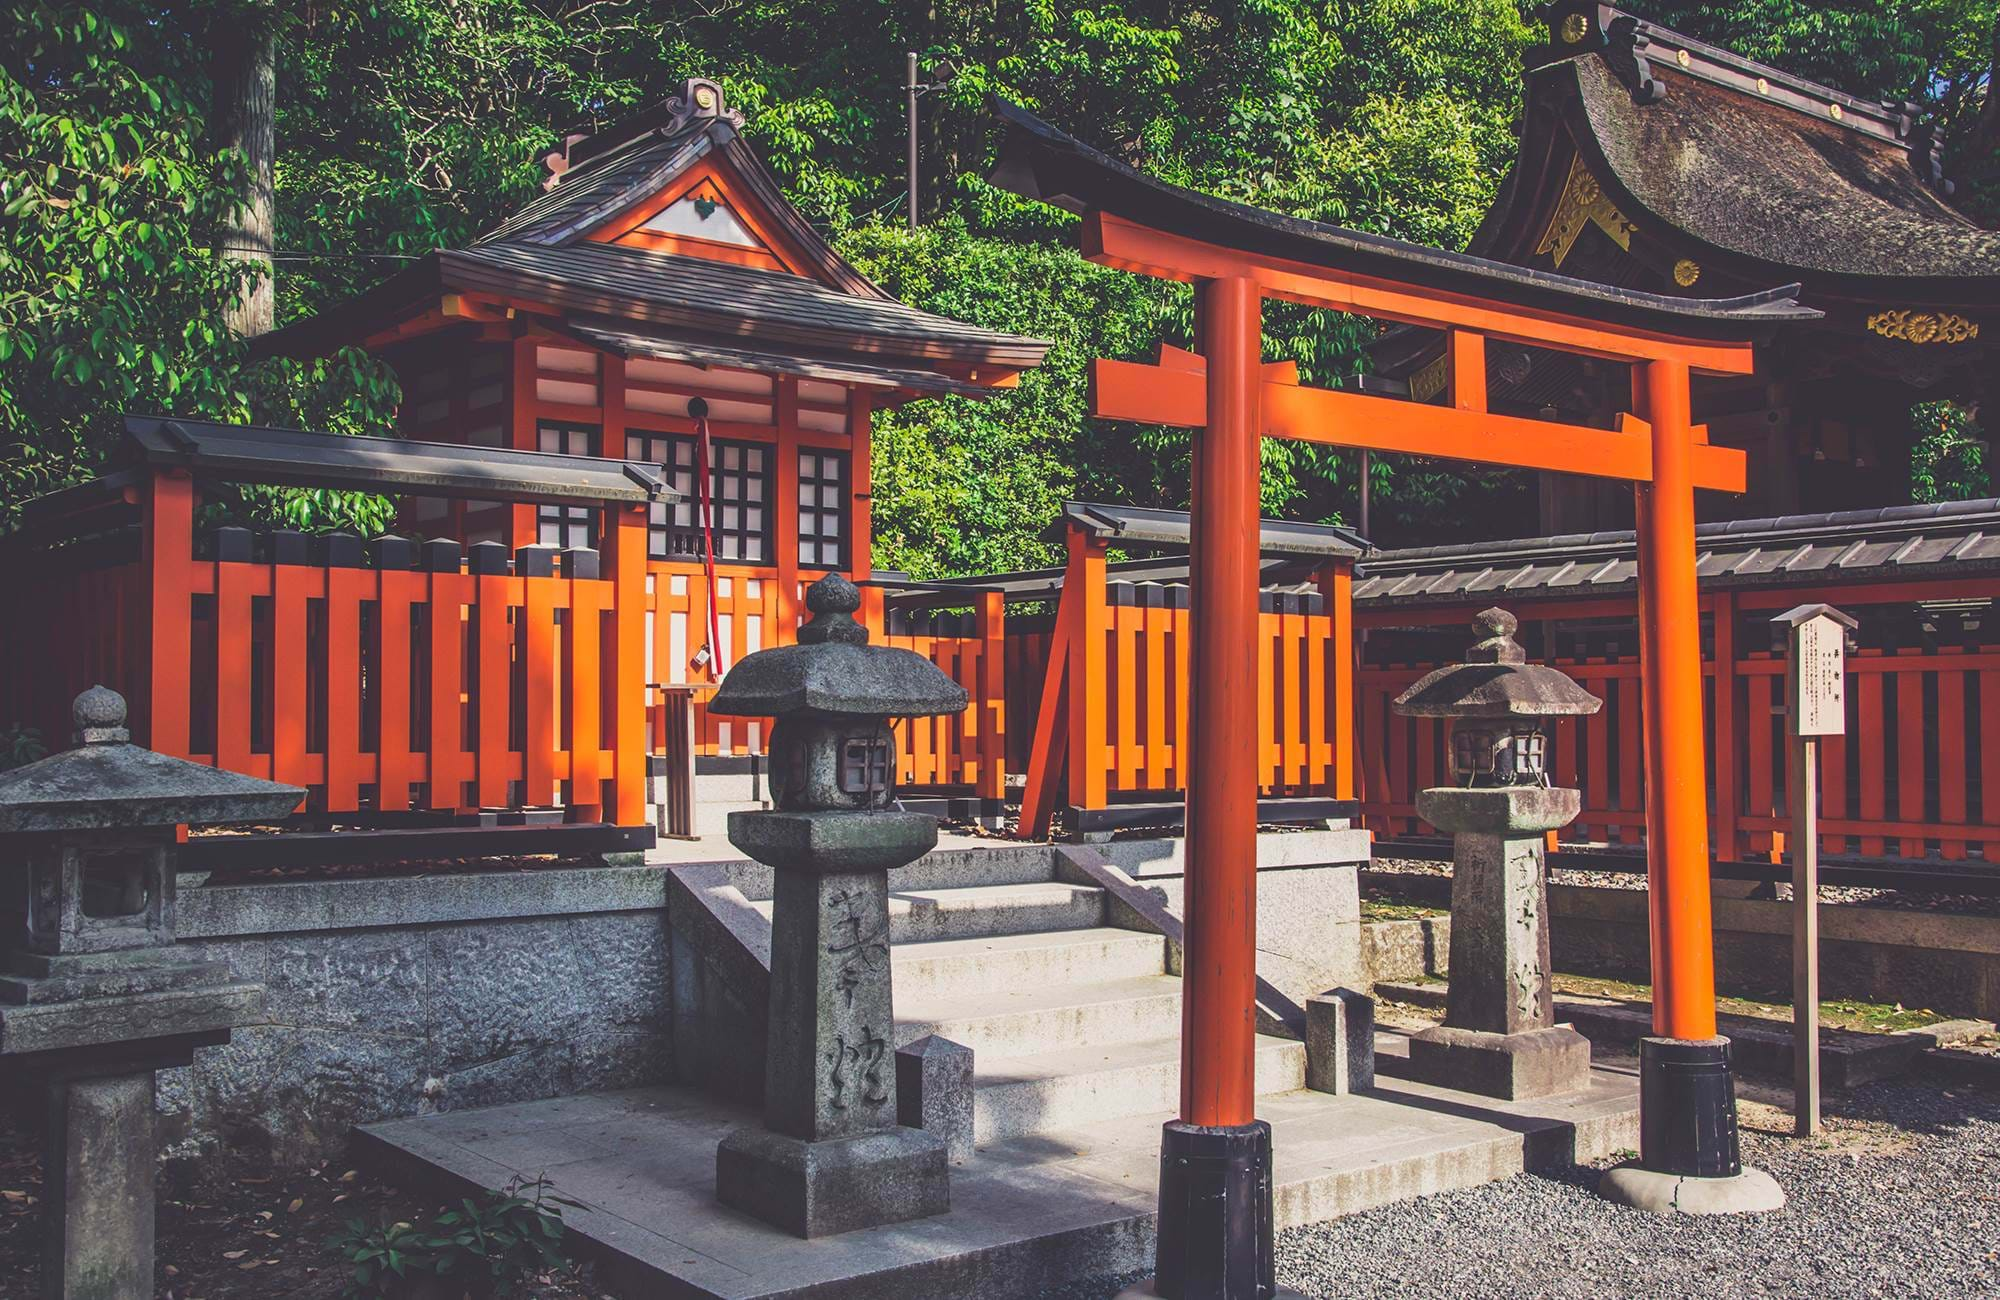 Tempel in Kyoto | Rondreizen door Japan met KILROY